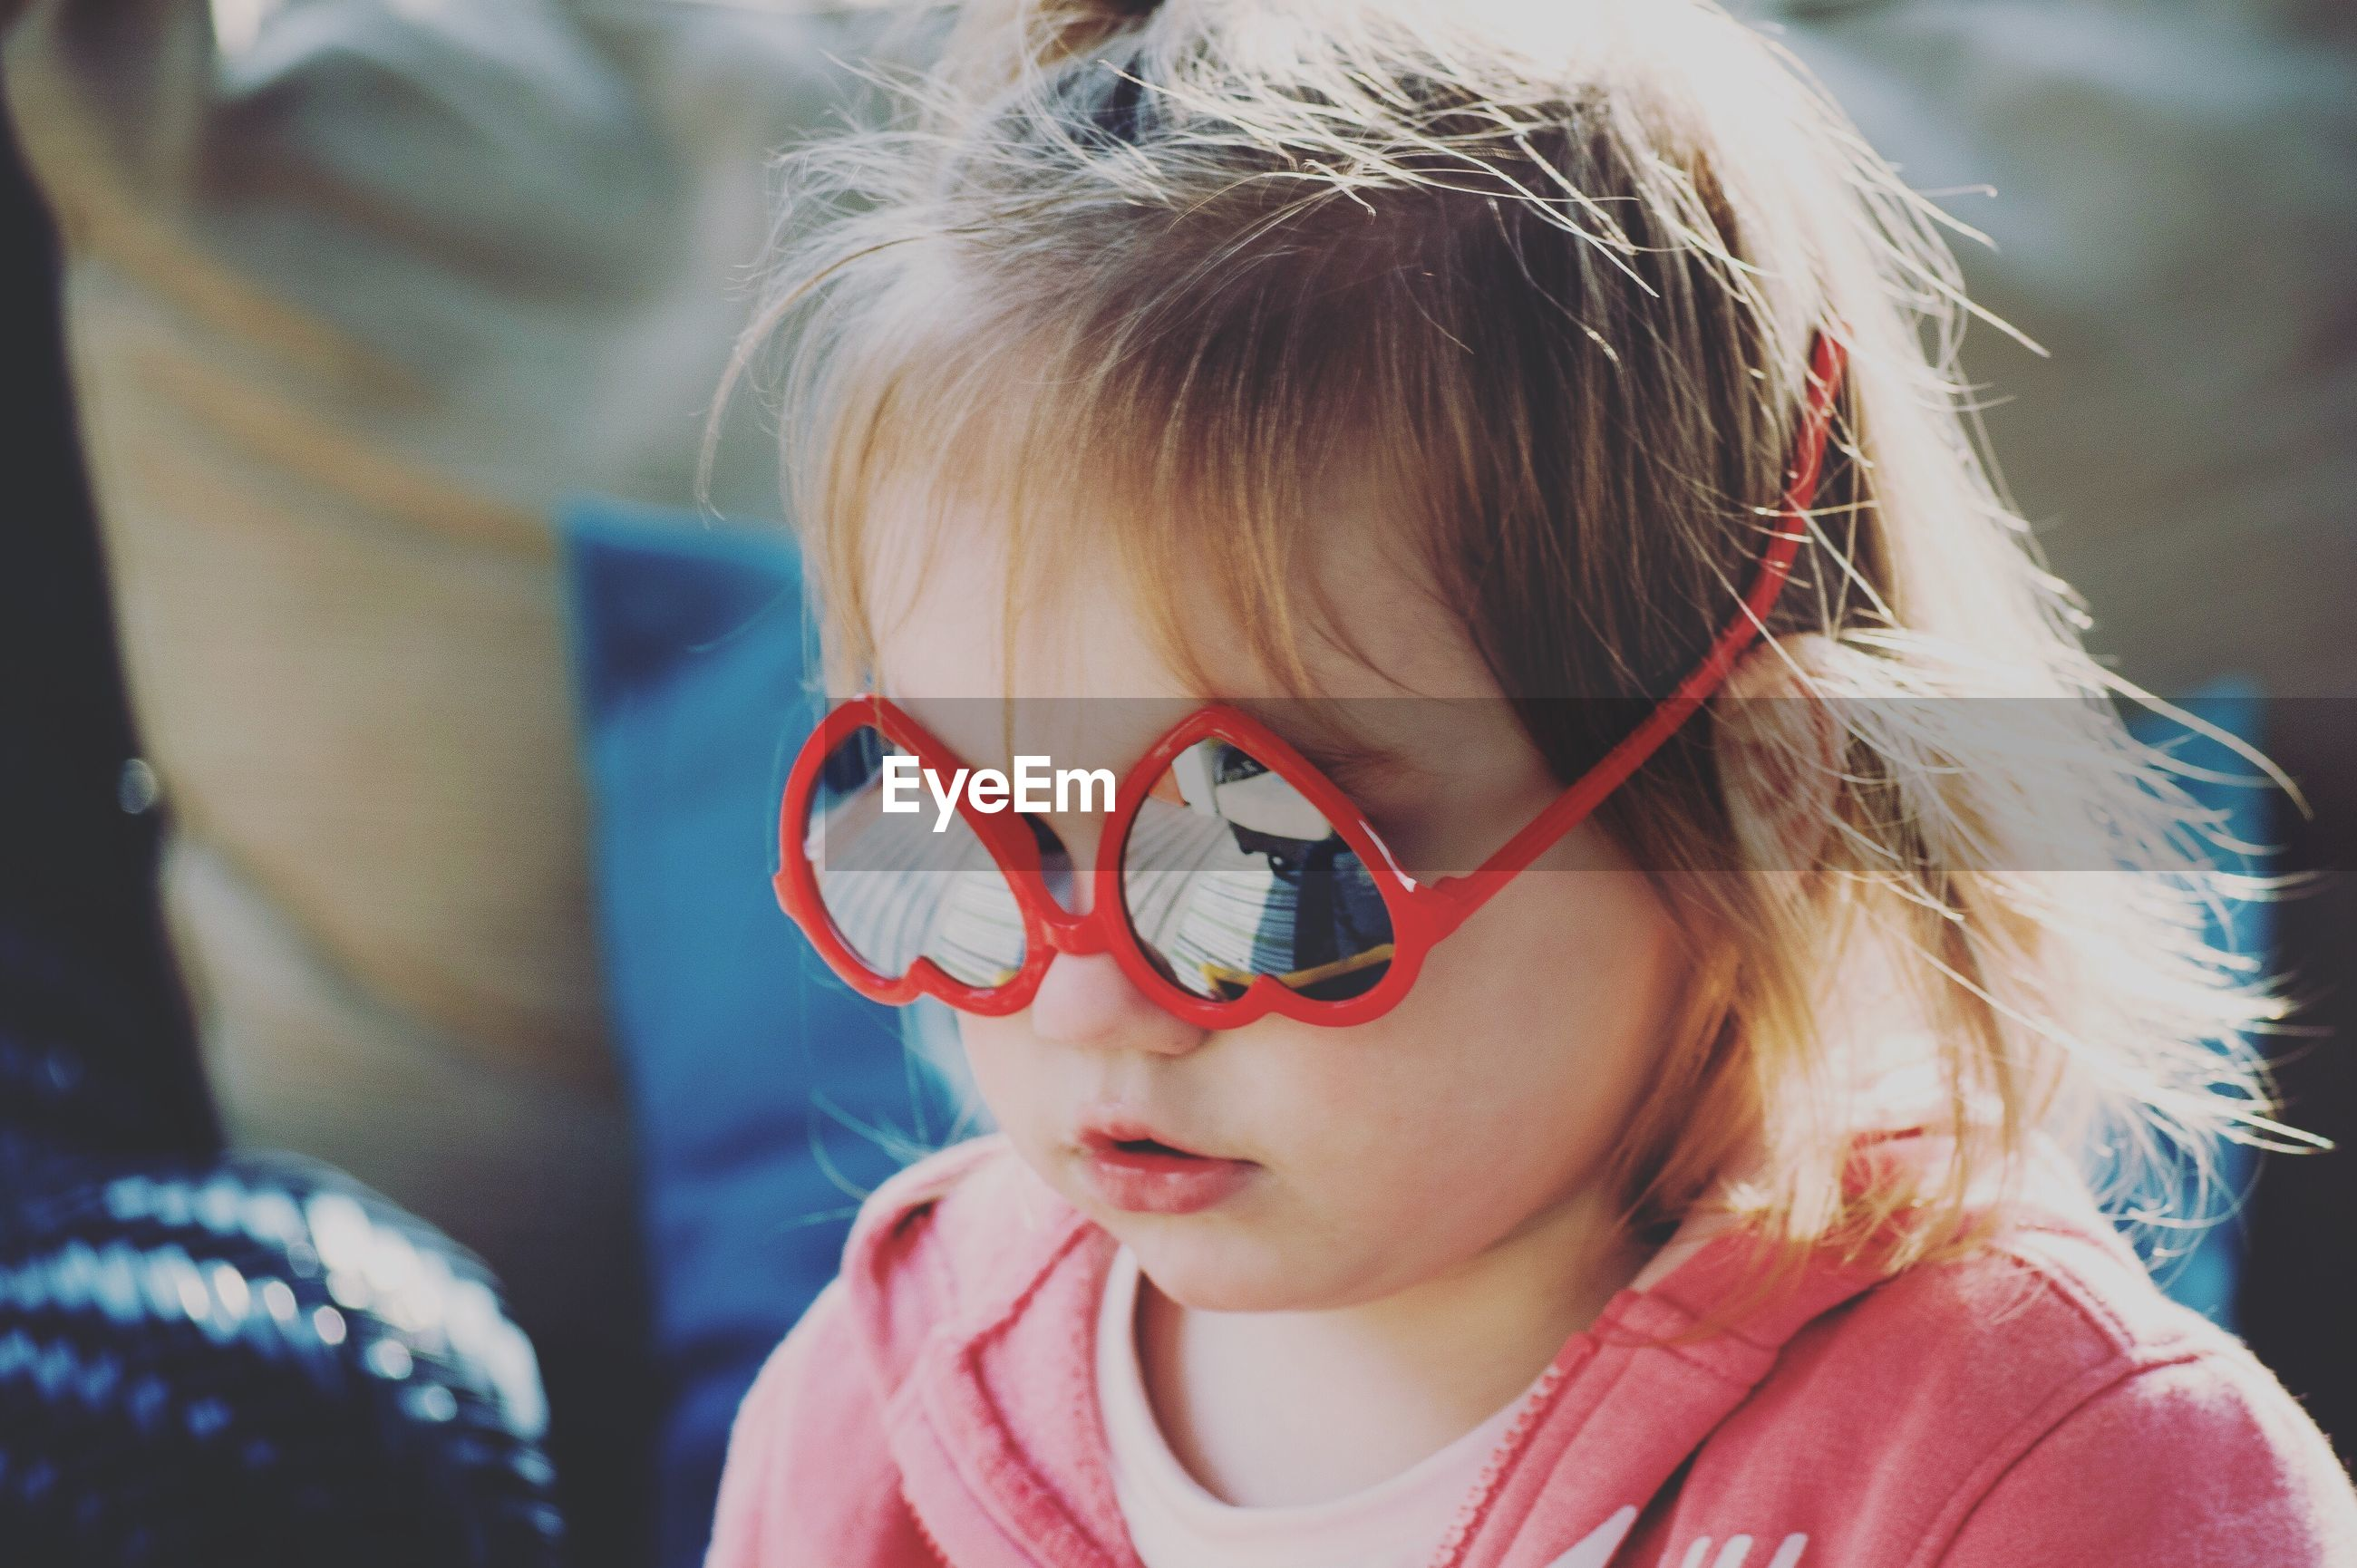 child, childhood, real people, headshot, one person, portrait, focus on foreground, blond hair, hair, leisure activity, lifestyles, innocence, close-up, cute, front view, glasses, women, day, fashion, outdoors, hairstyle